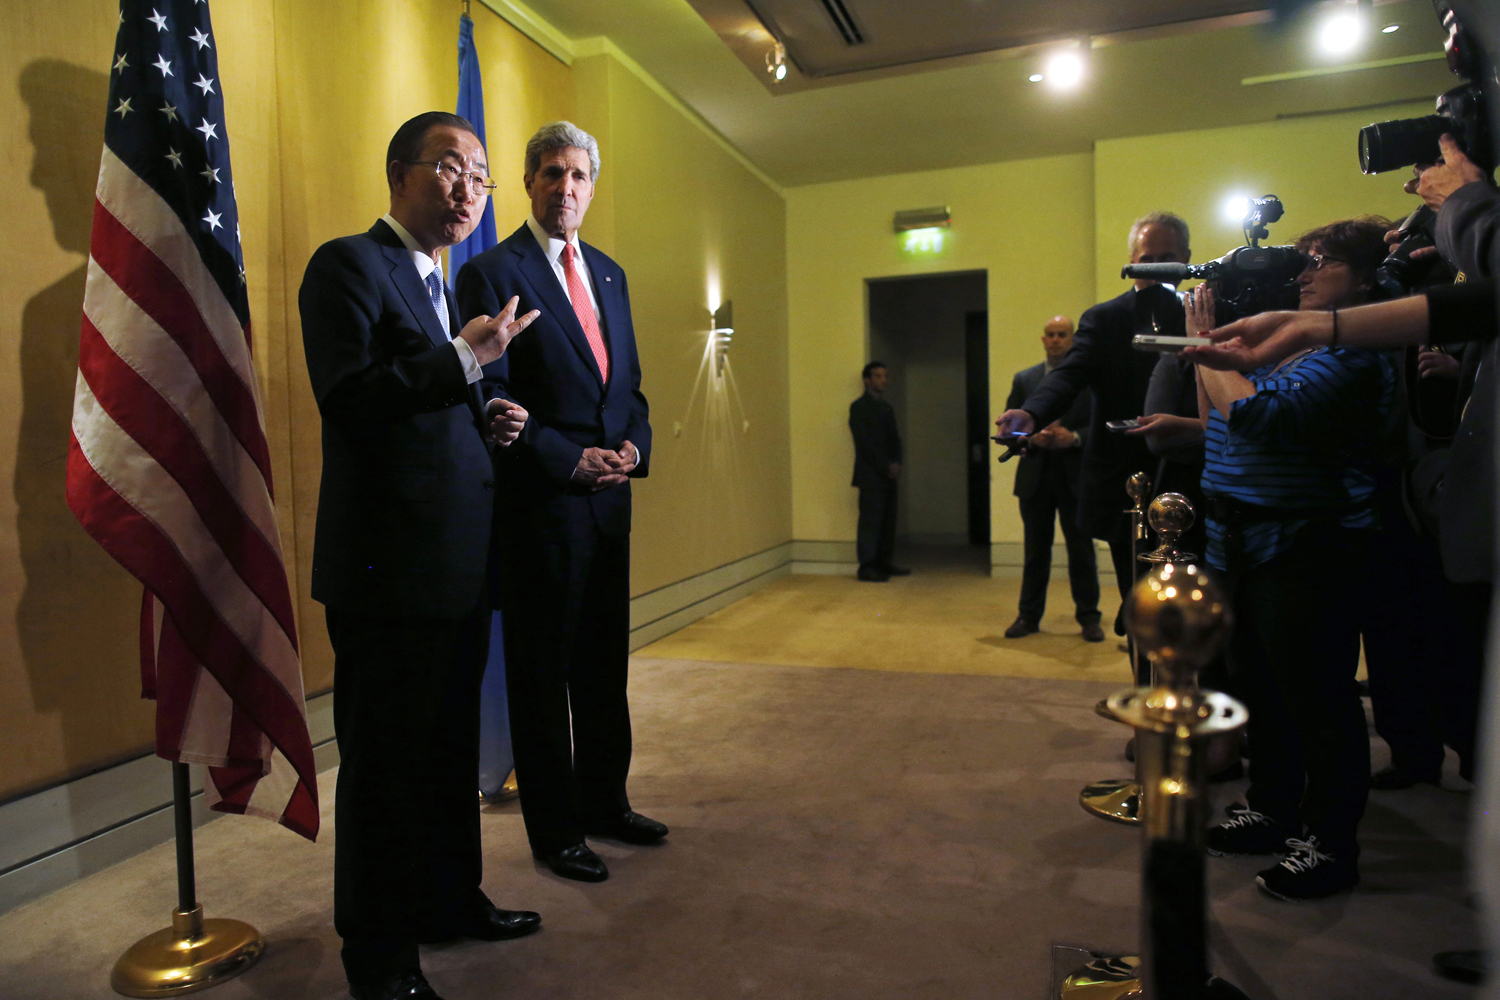 U.N. Secretary-General Ban Ki-moon, left, and U.S. Secretary of State John Kerry speak to reporters in Cairo on July 21, 2014